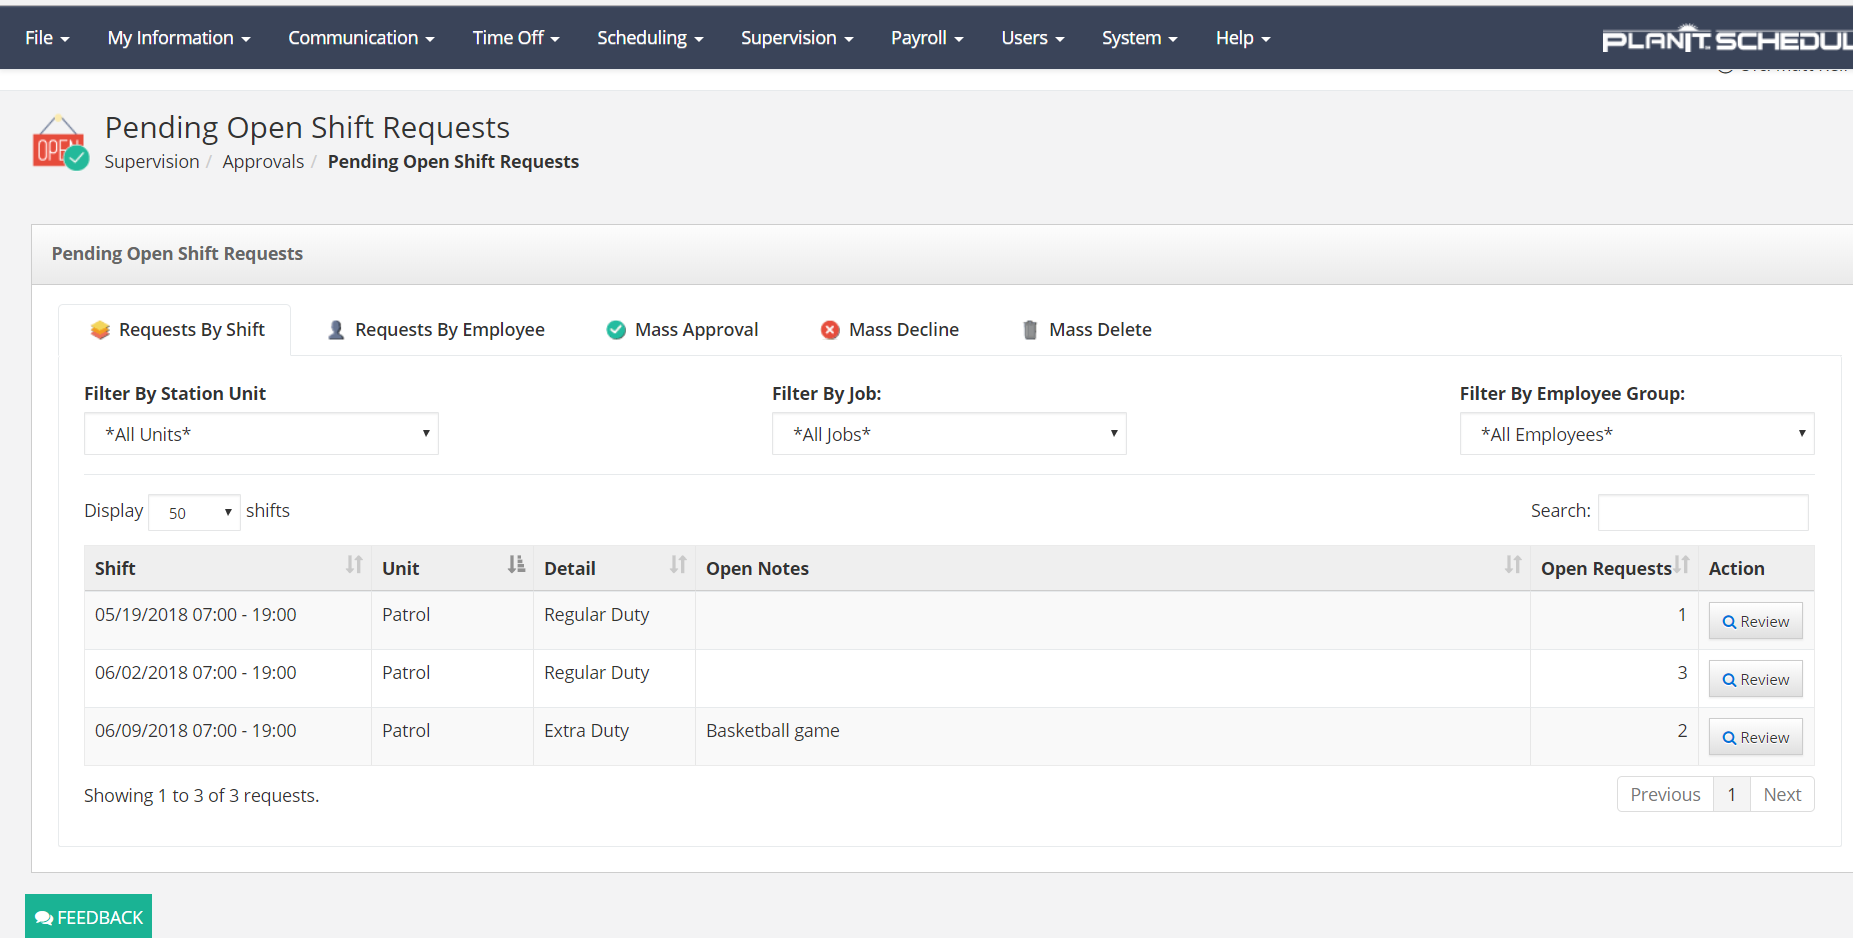 Pending openshift request screen in PlanIt Police Scheduling Software